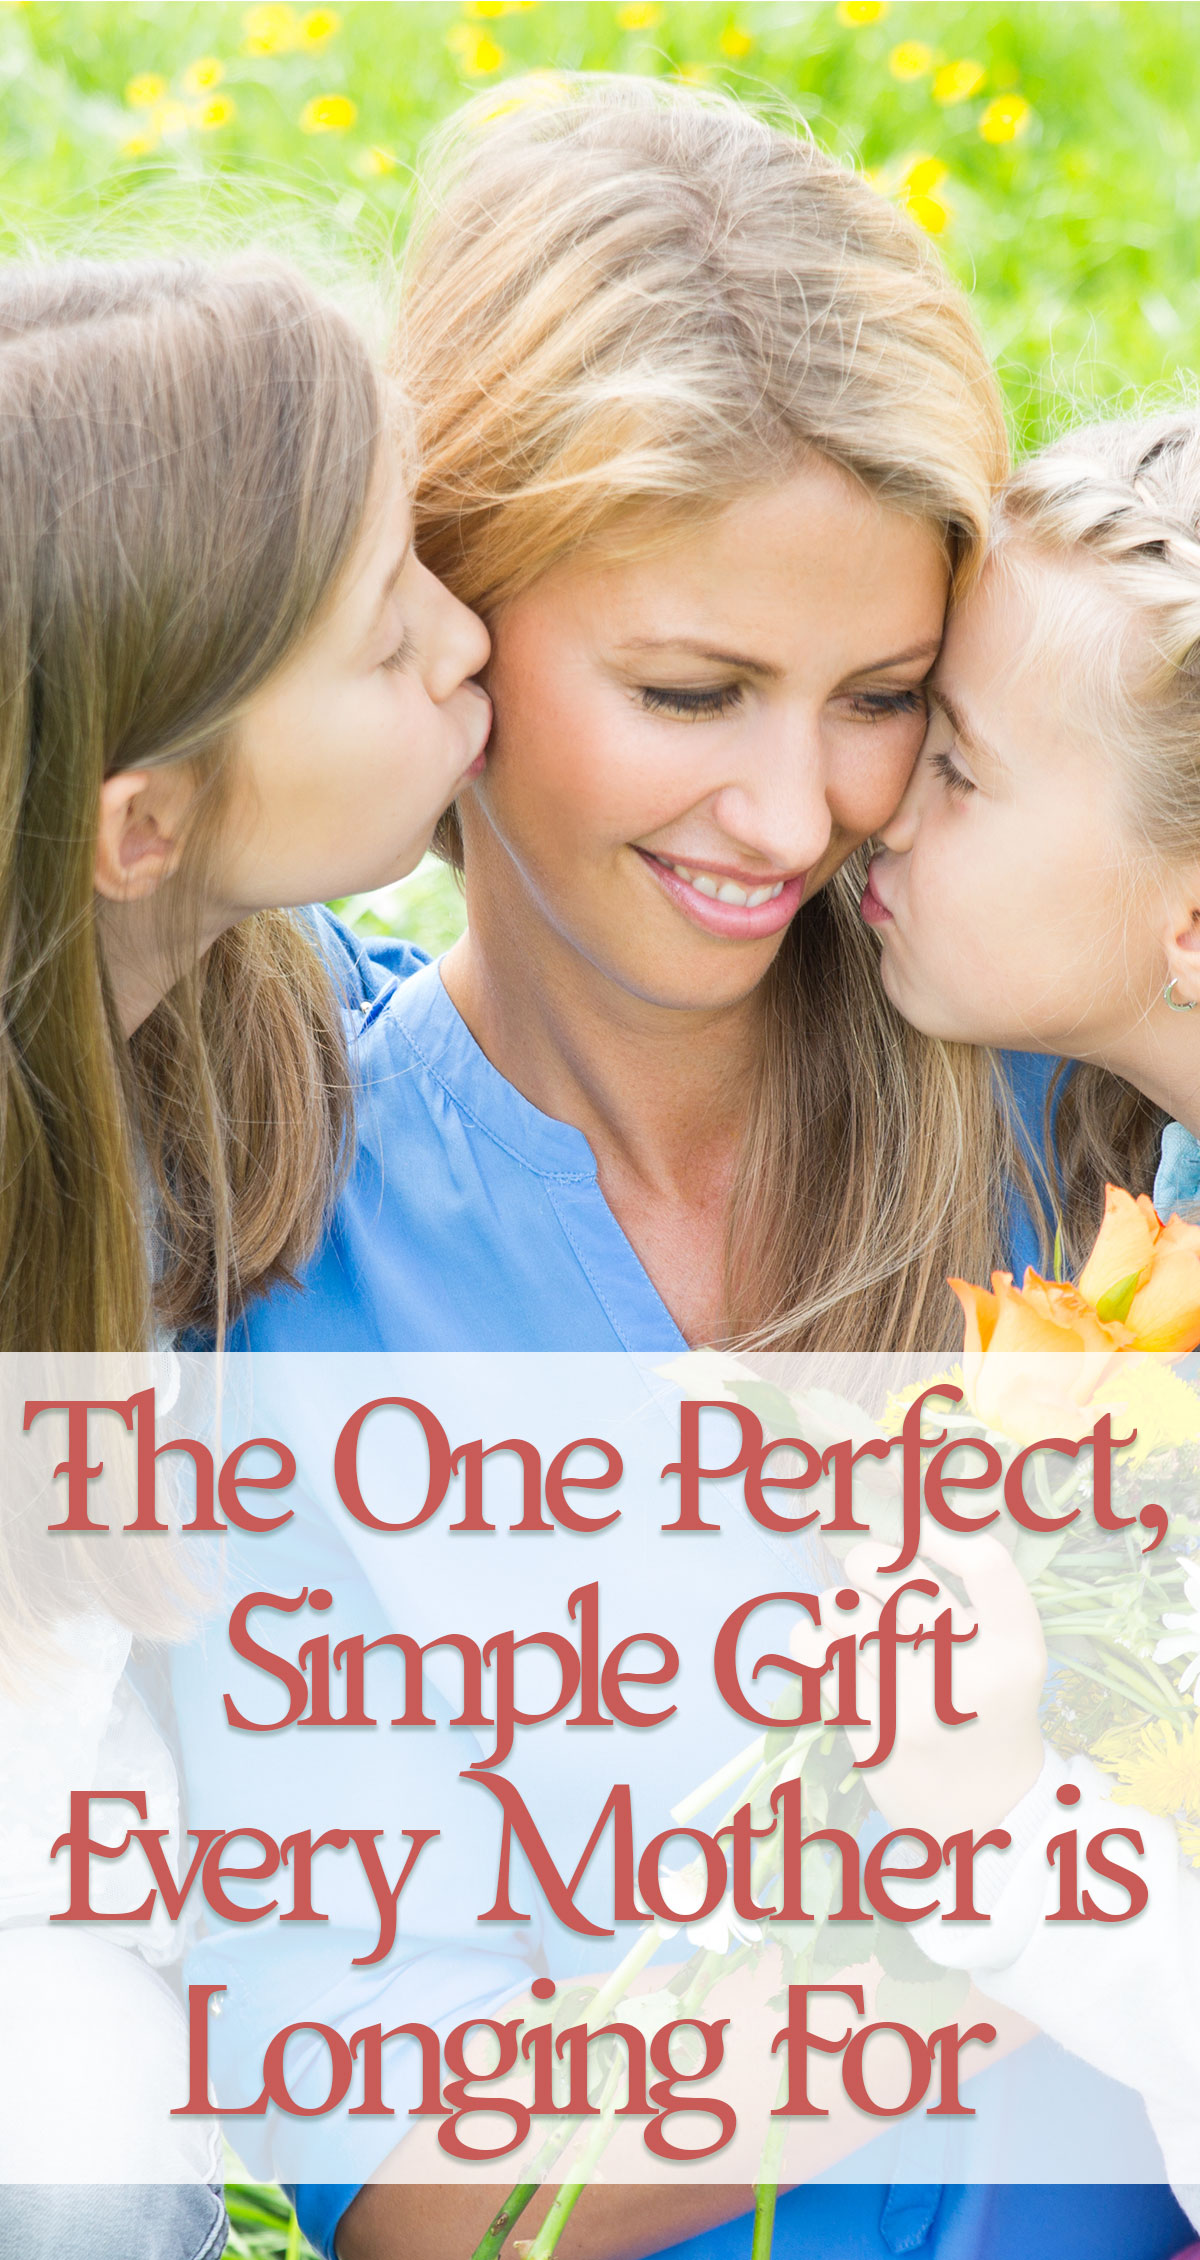 The 1 Perfect, Simple Gift Every Mother is Longing For Pin